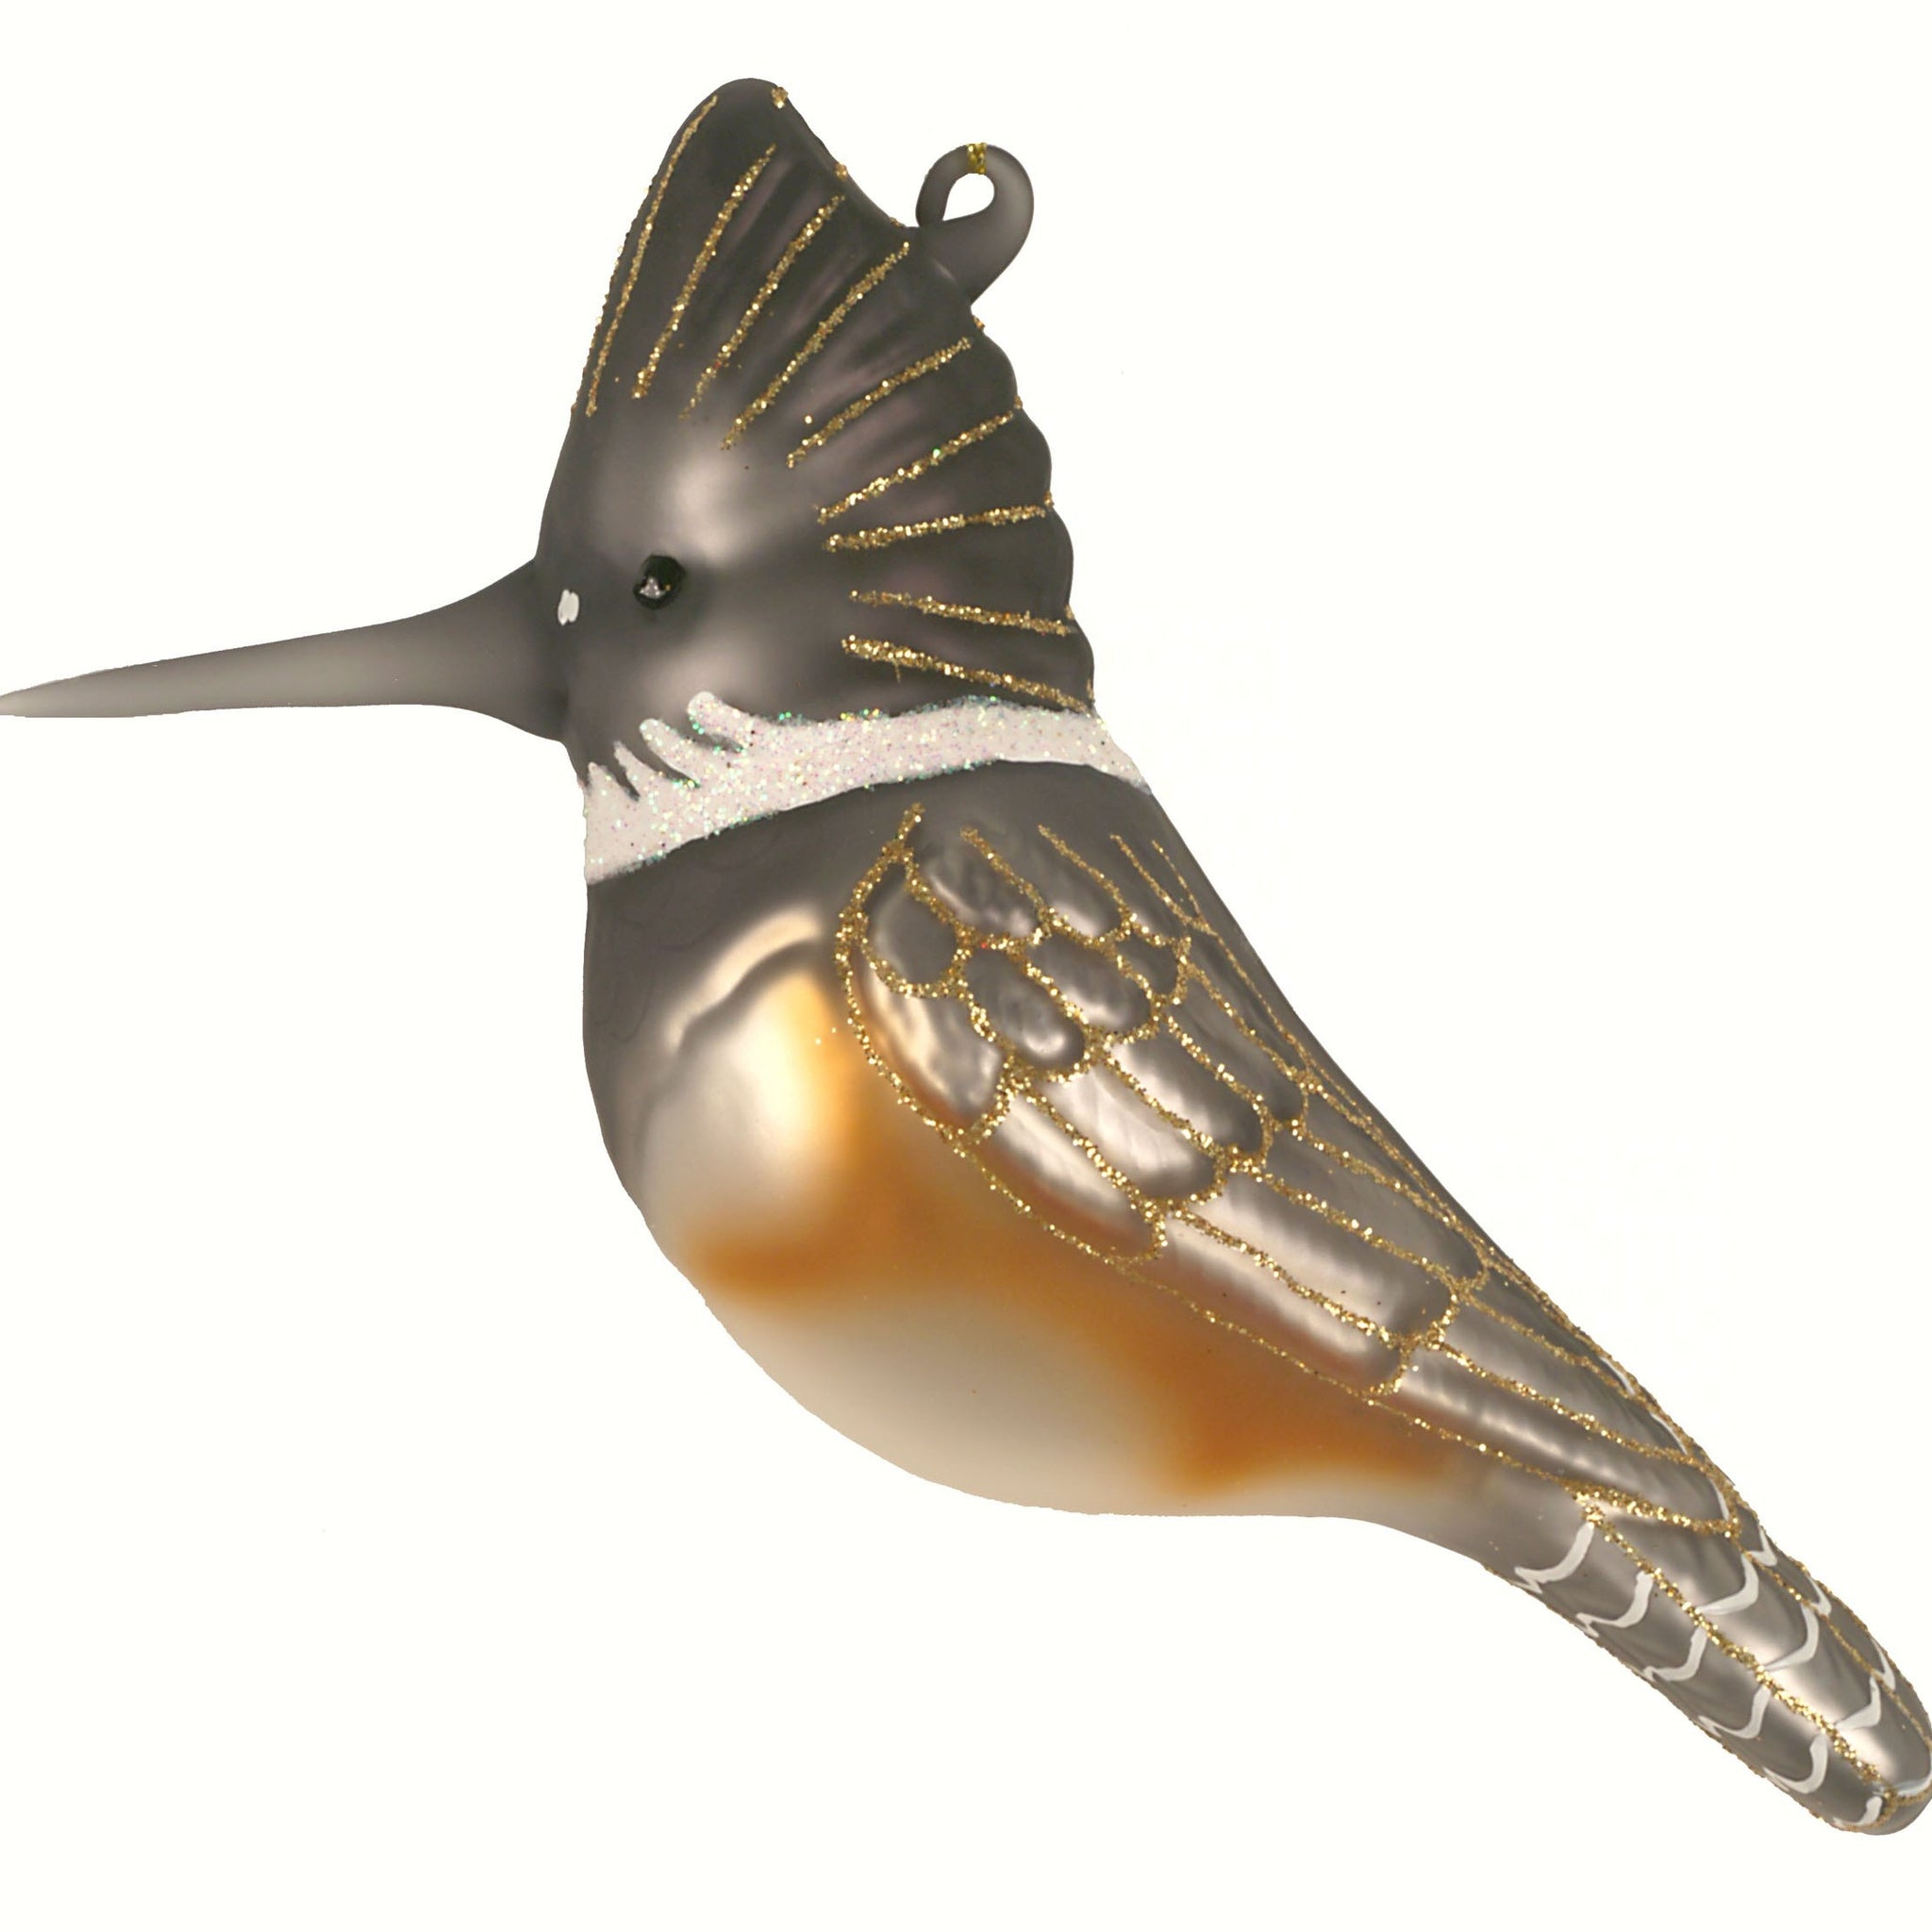 Kingfisher Ornament